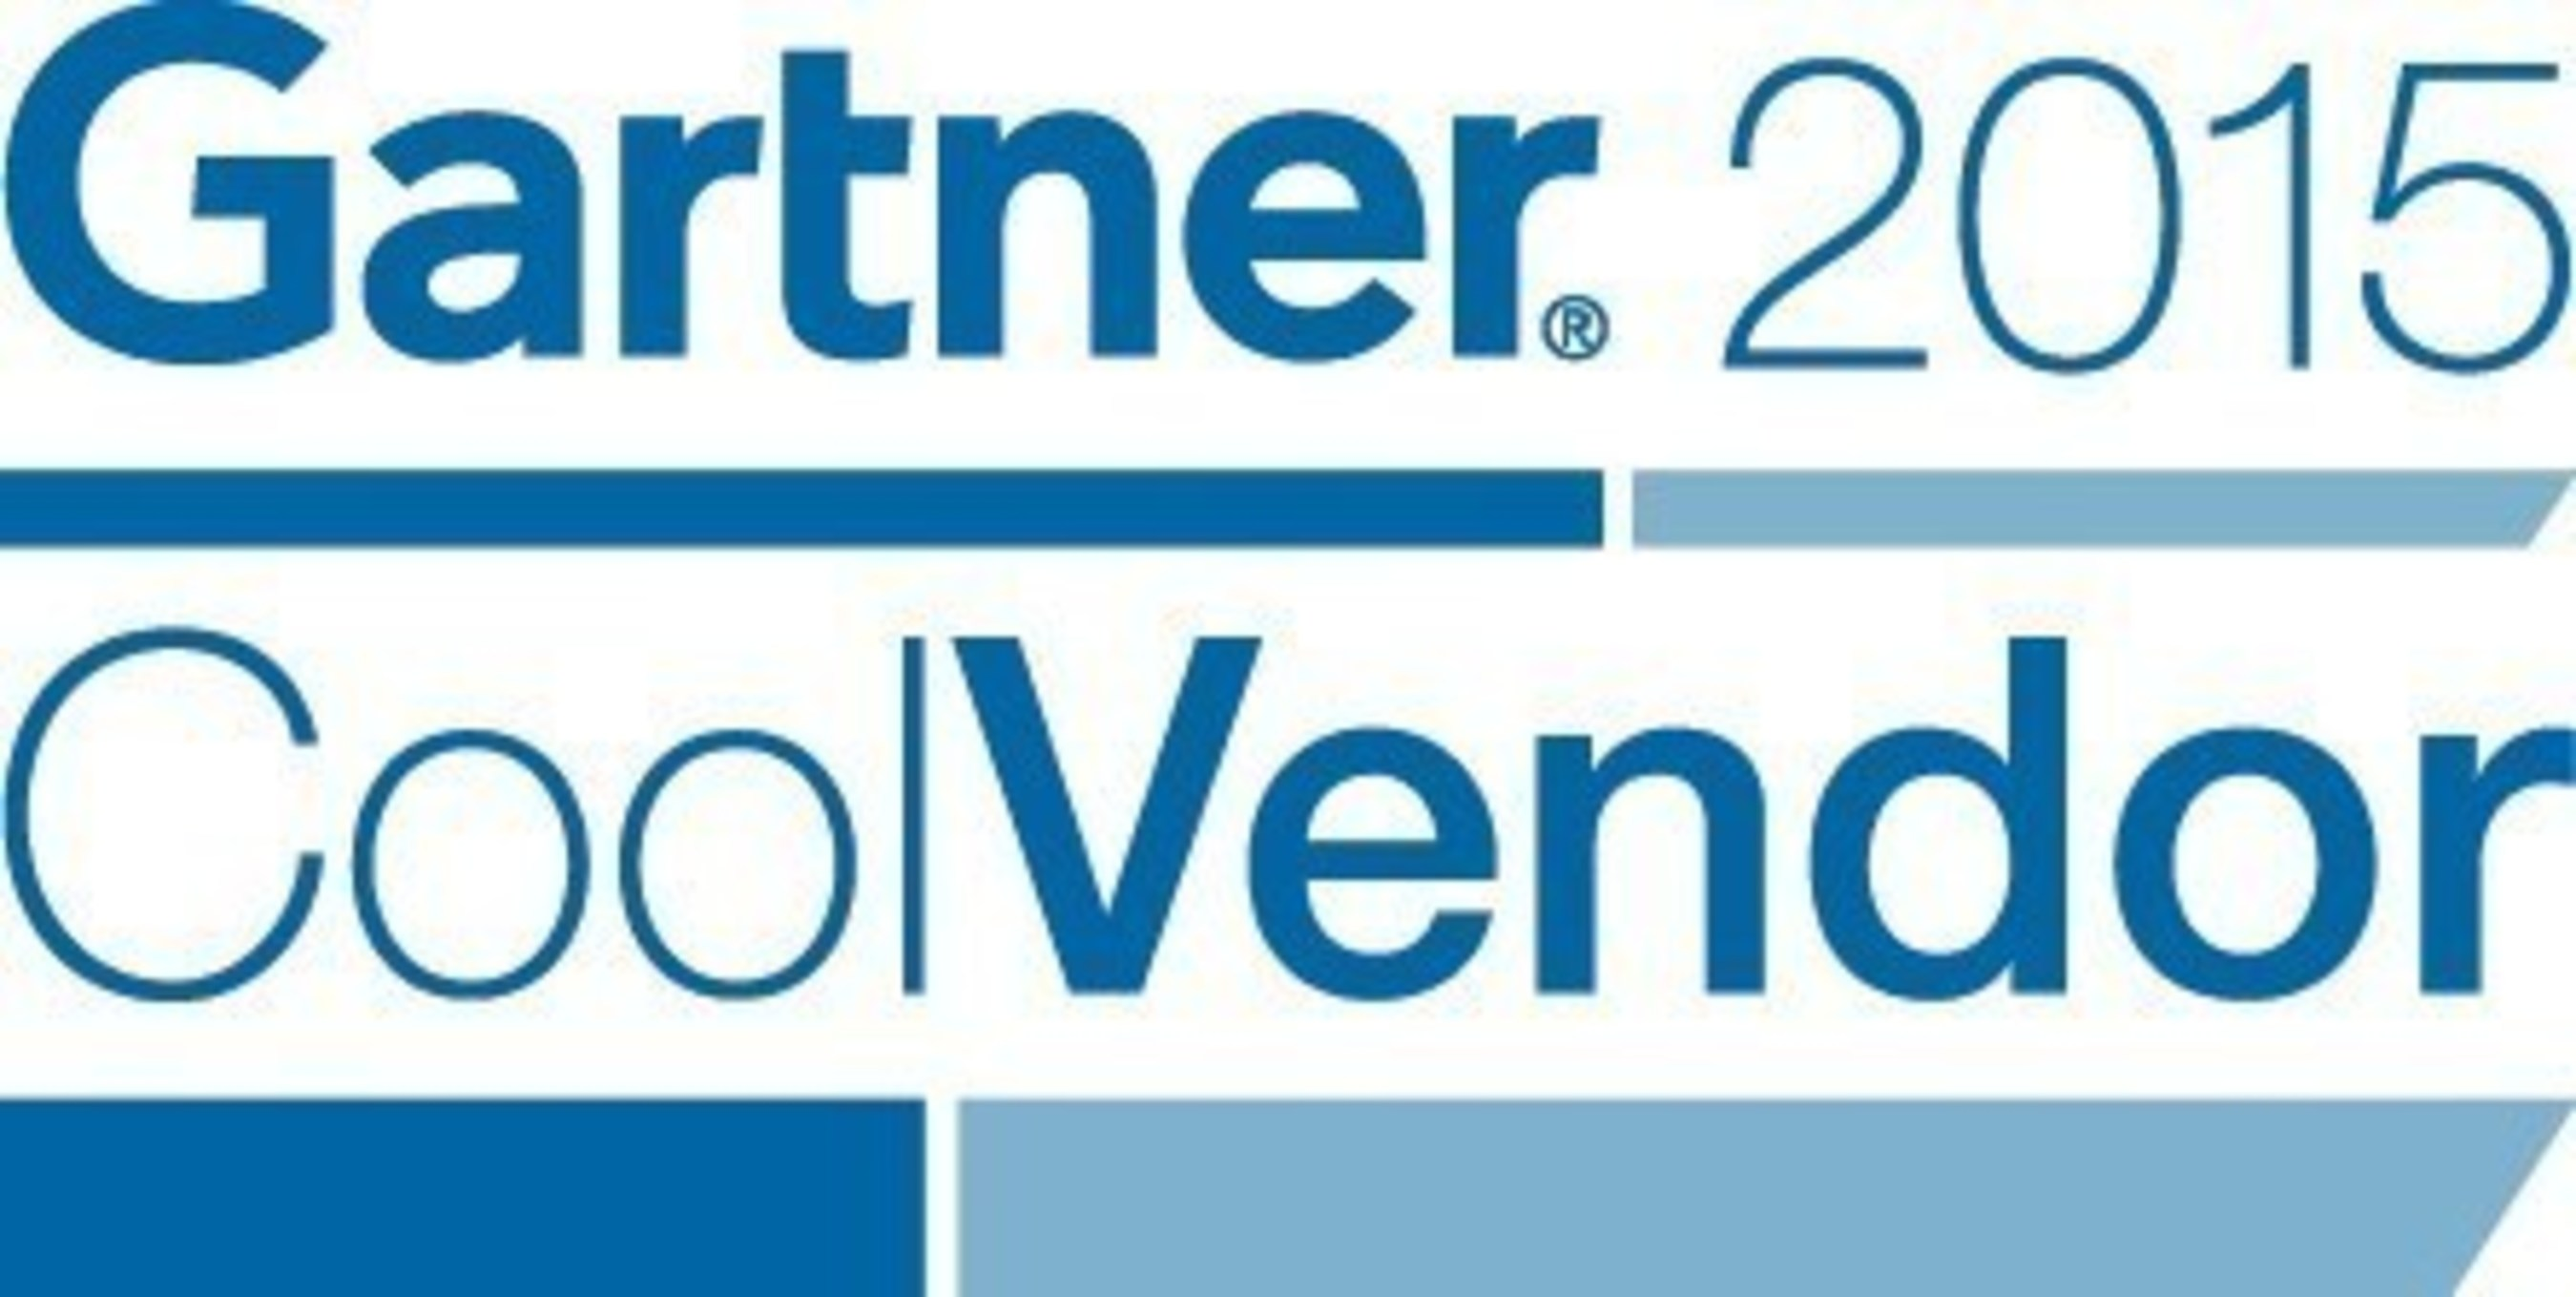 """Elemental is named a """"Cool Vendor"""" by Gartner in a report looking at the communications service providerinfrastructure market."""